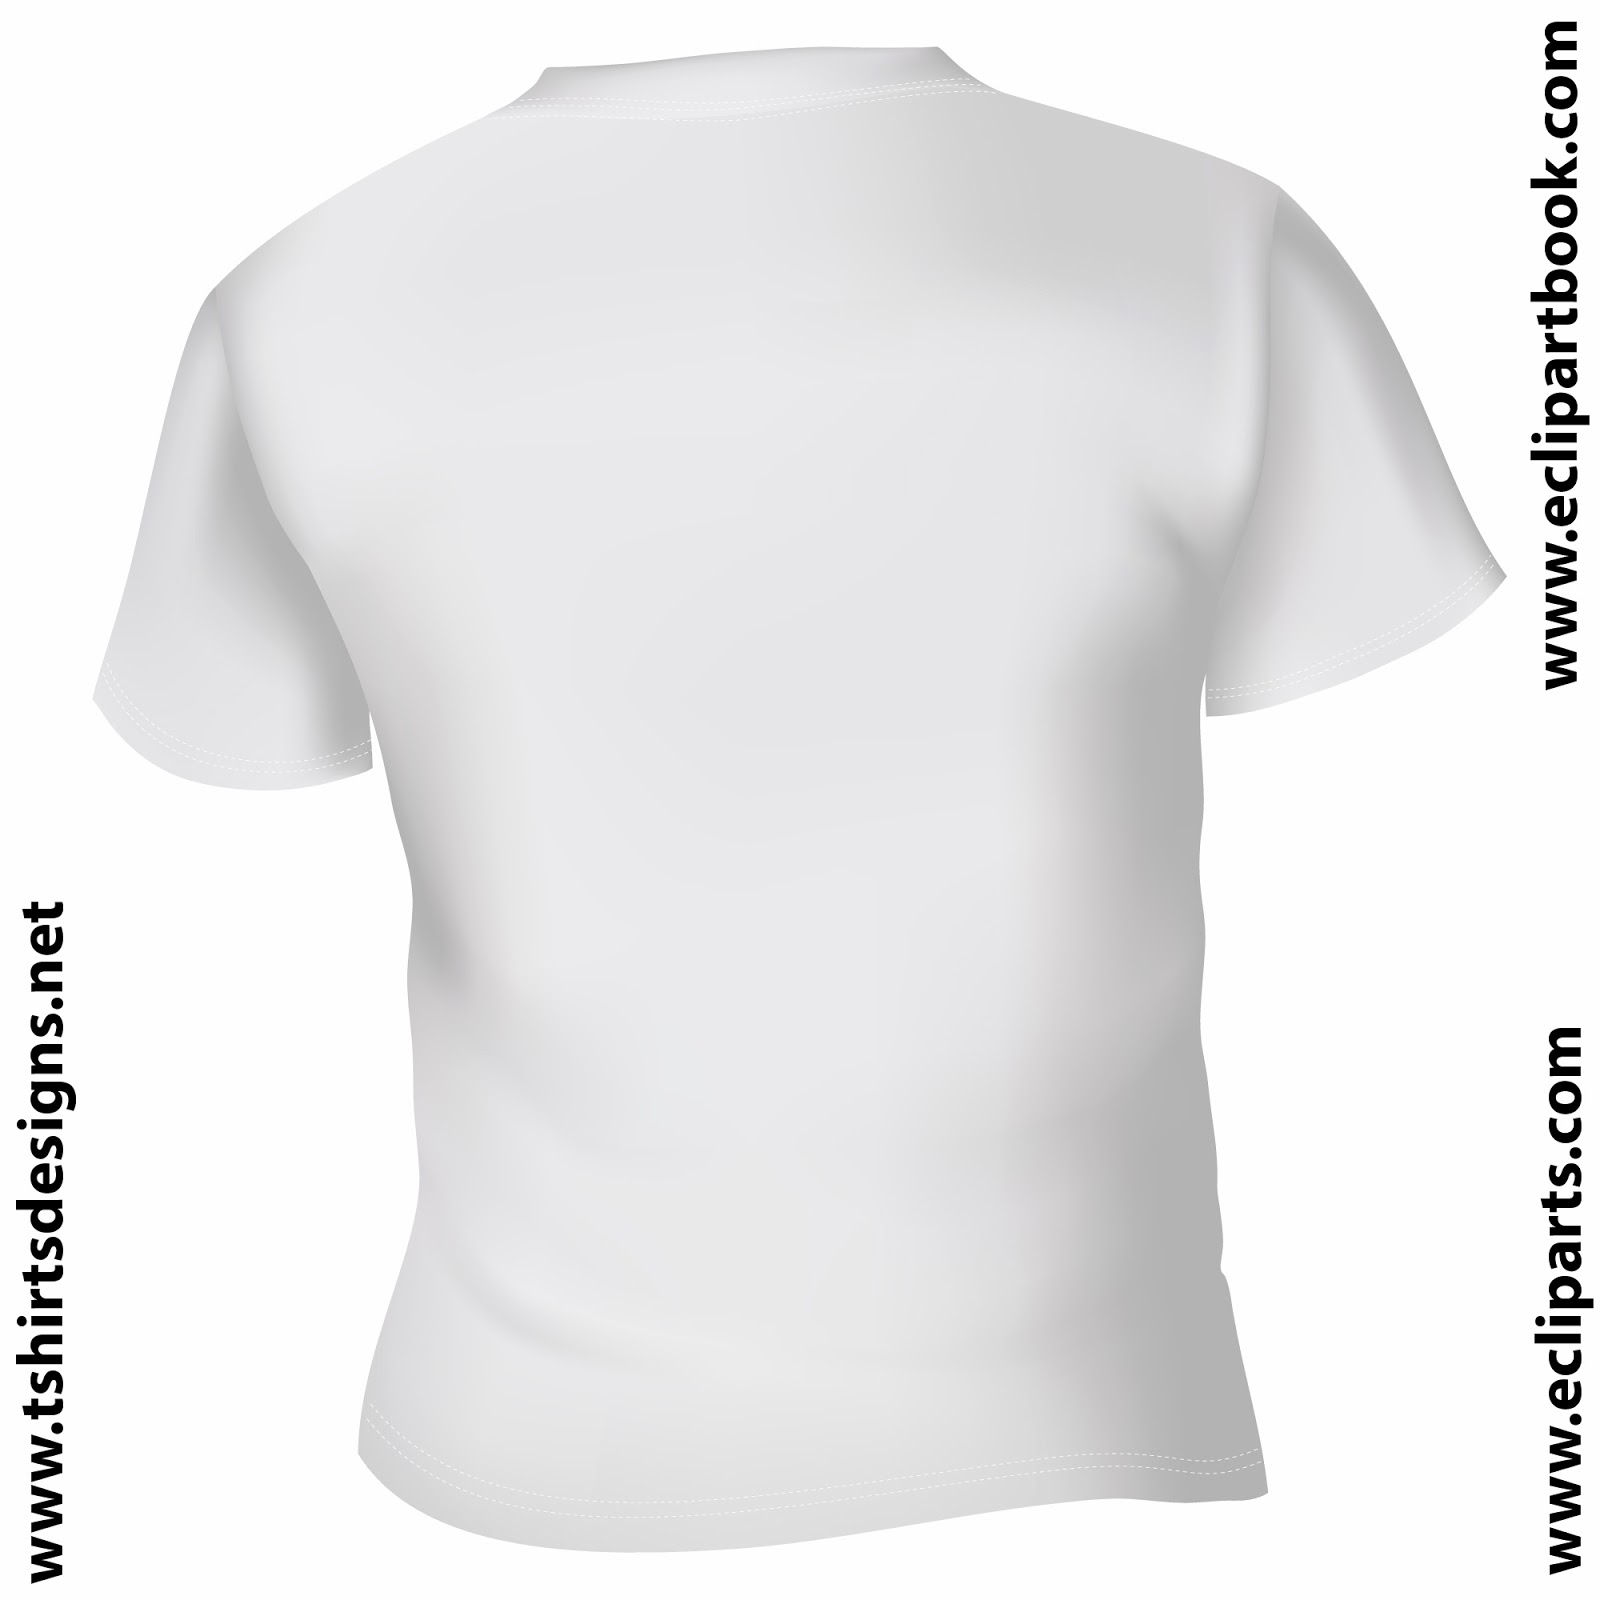 White T-Shirt Front and Back